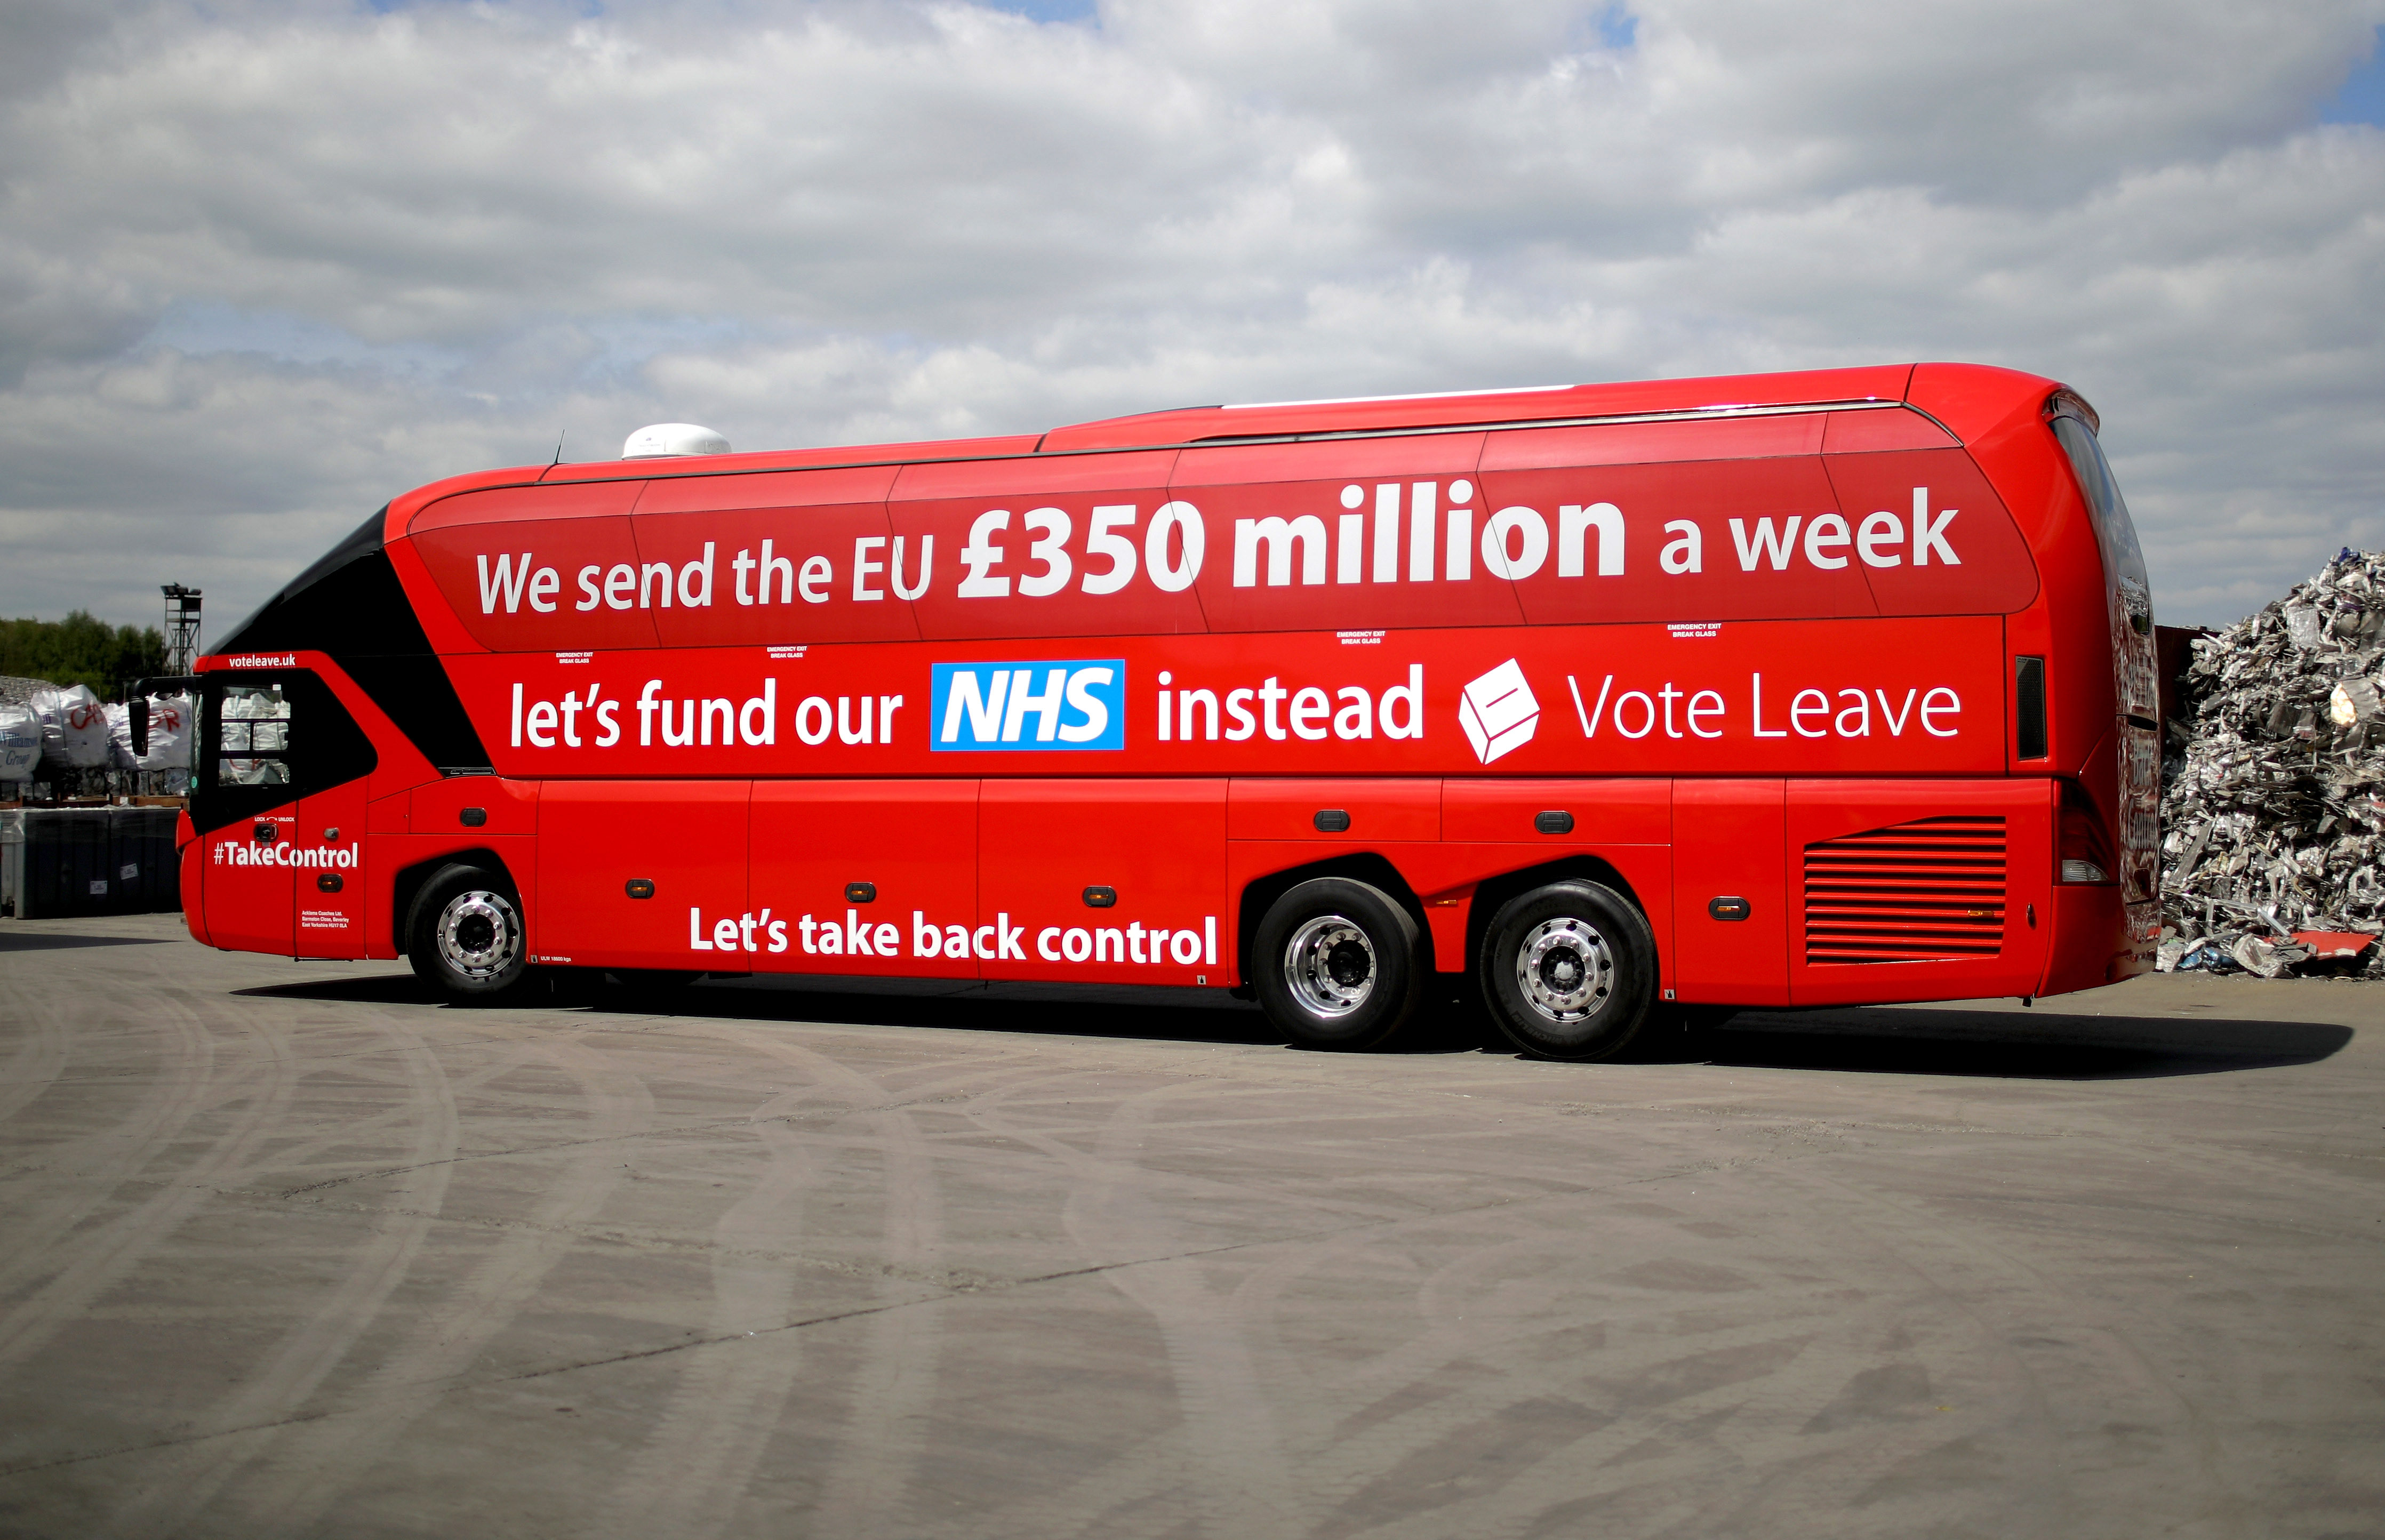 Johnson Aims to Meet Brexit Bus Pledge With Health-Care Boost - Bloomberg